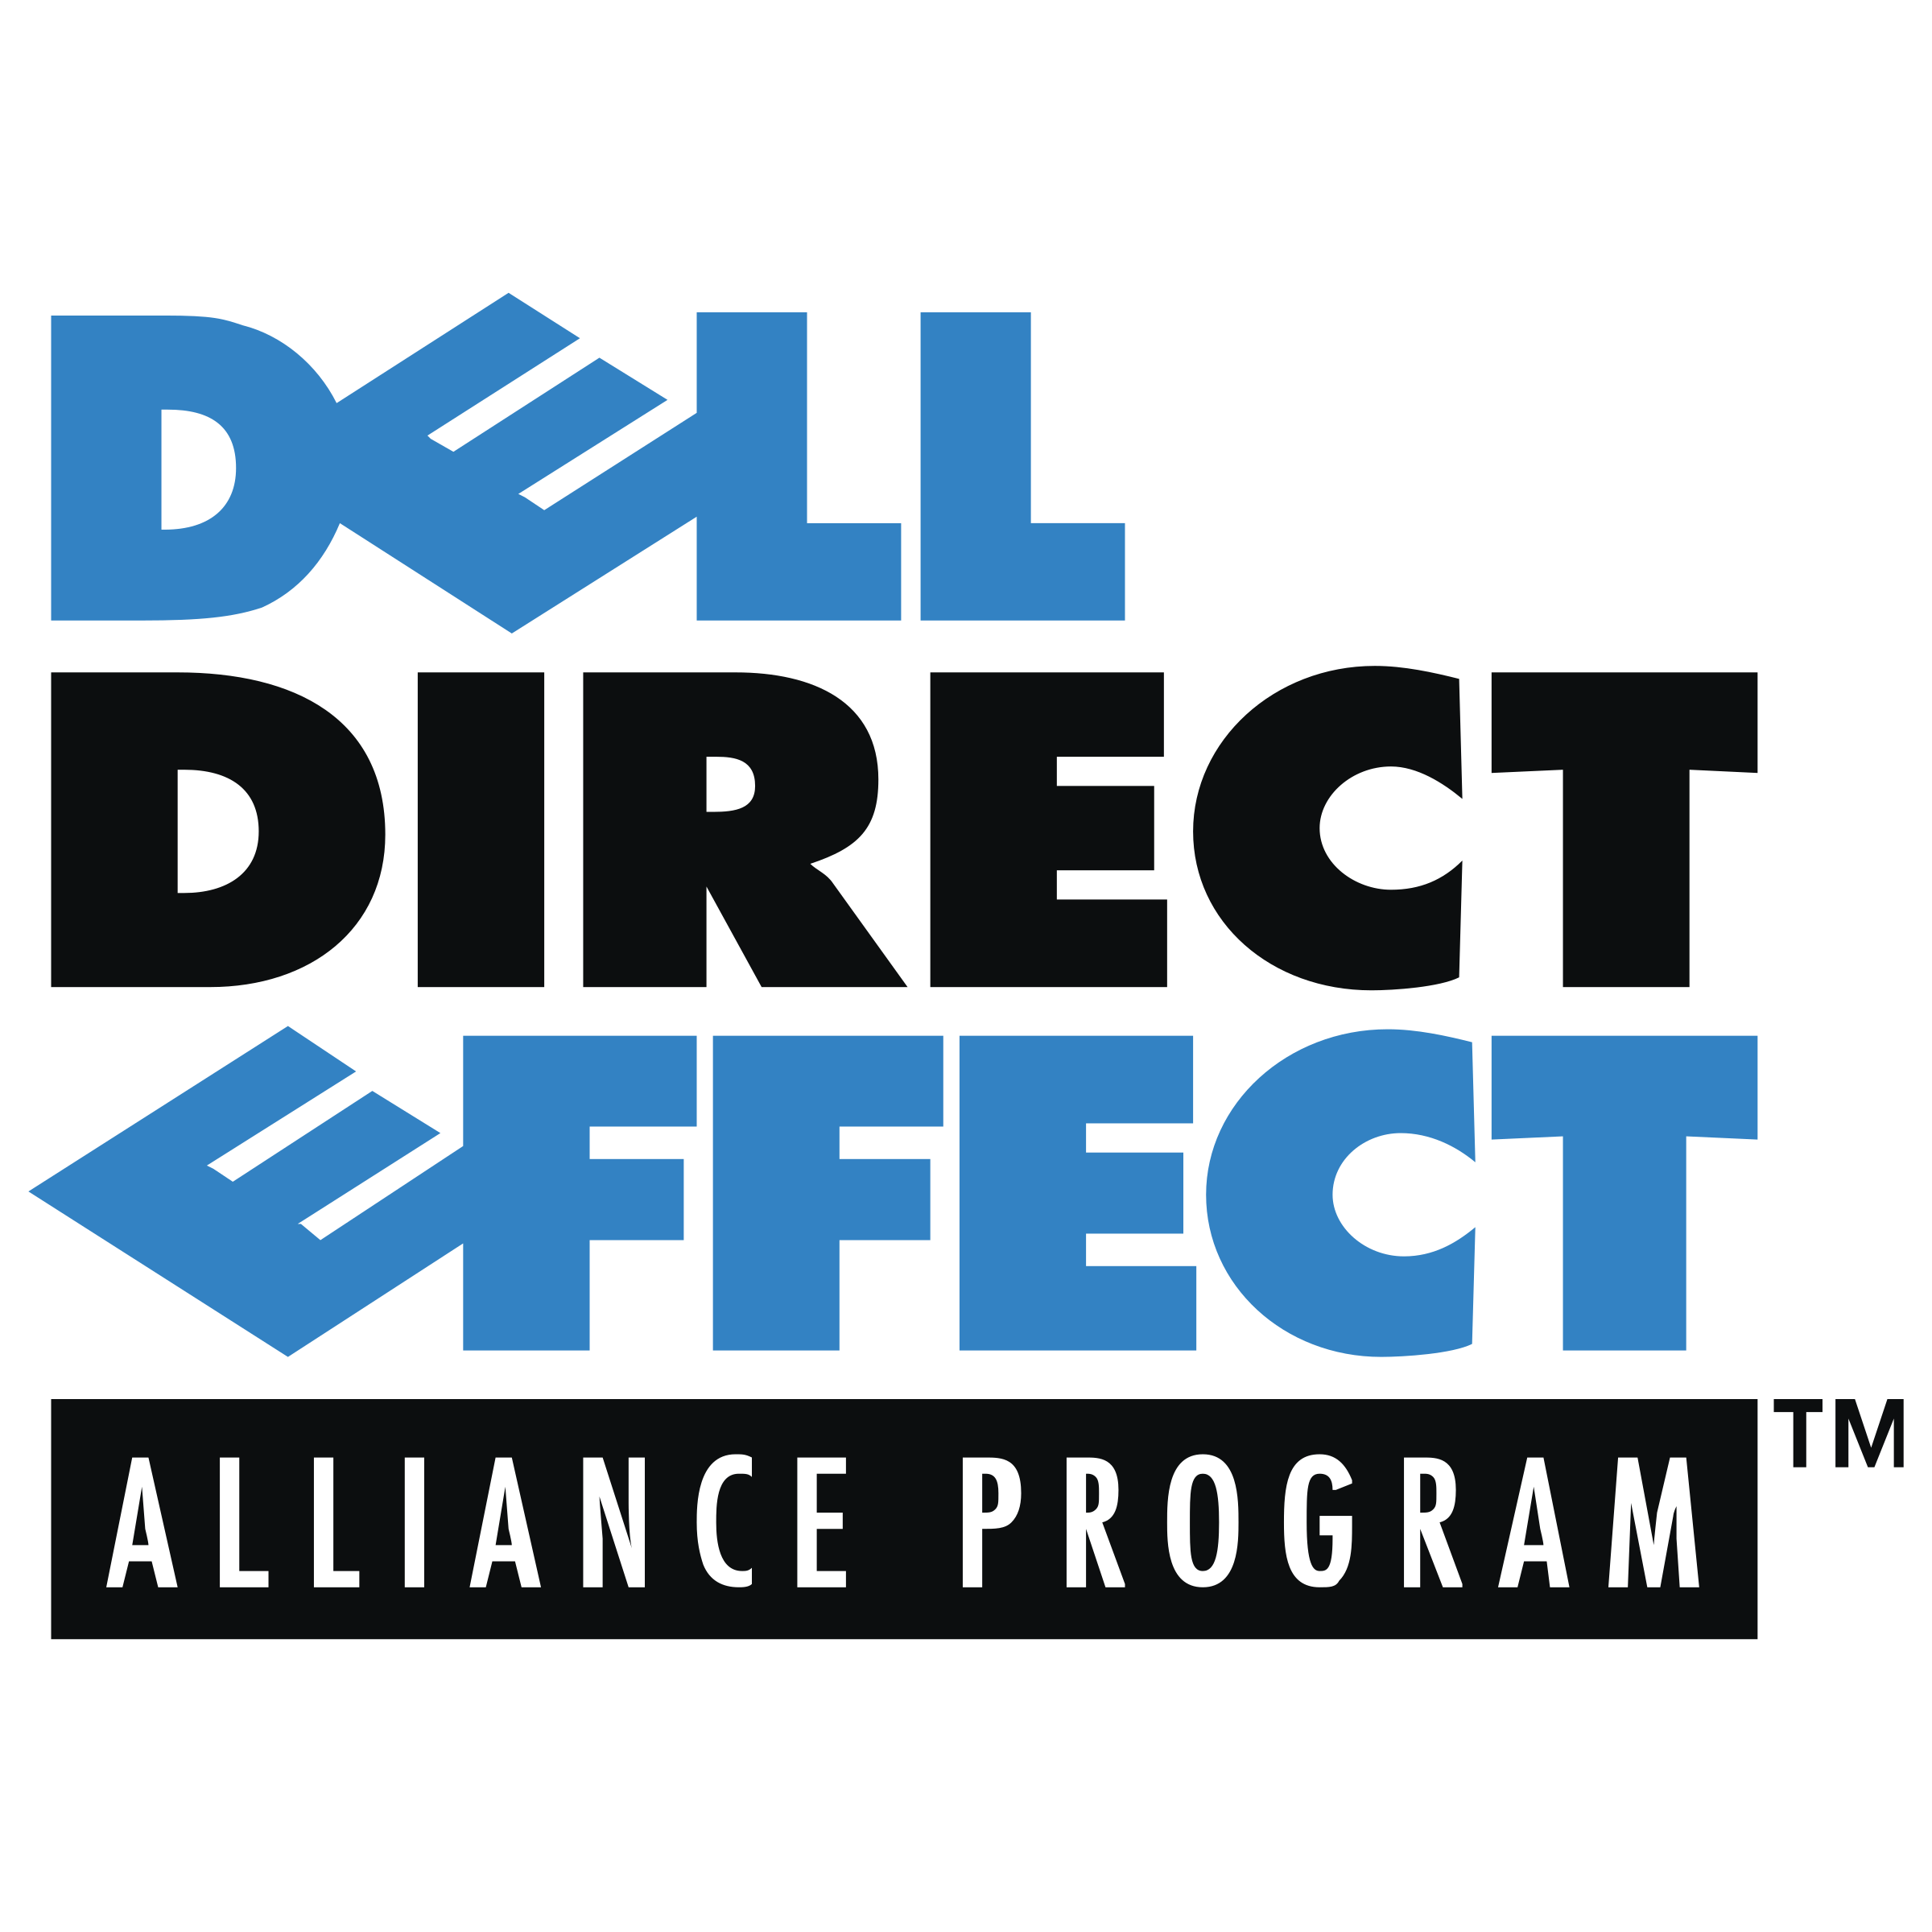 Vector effect text. Dell direct logo png